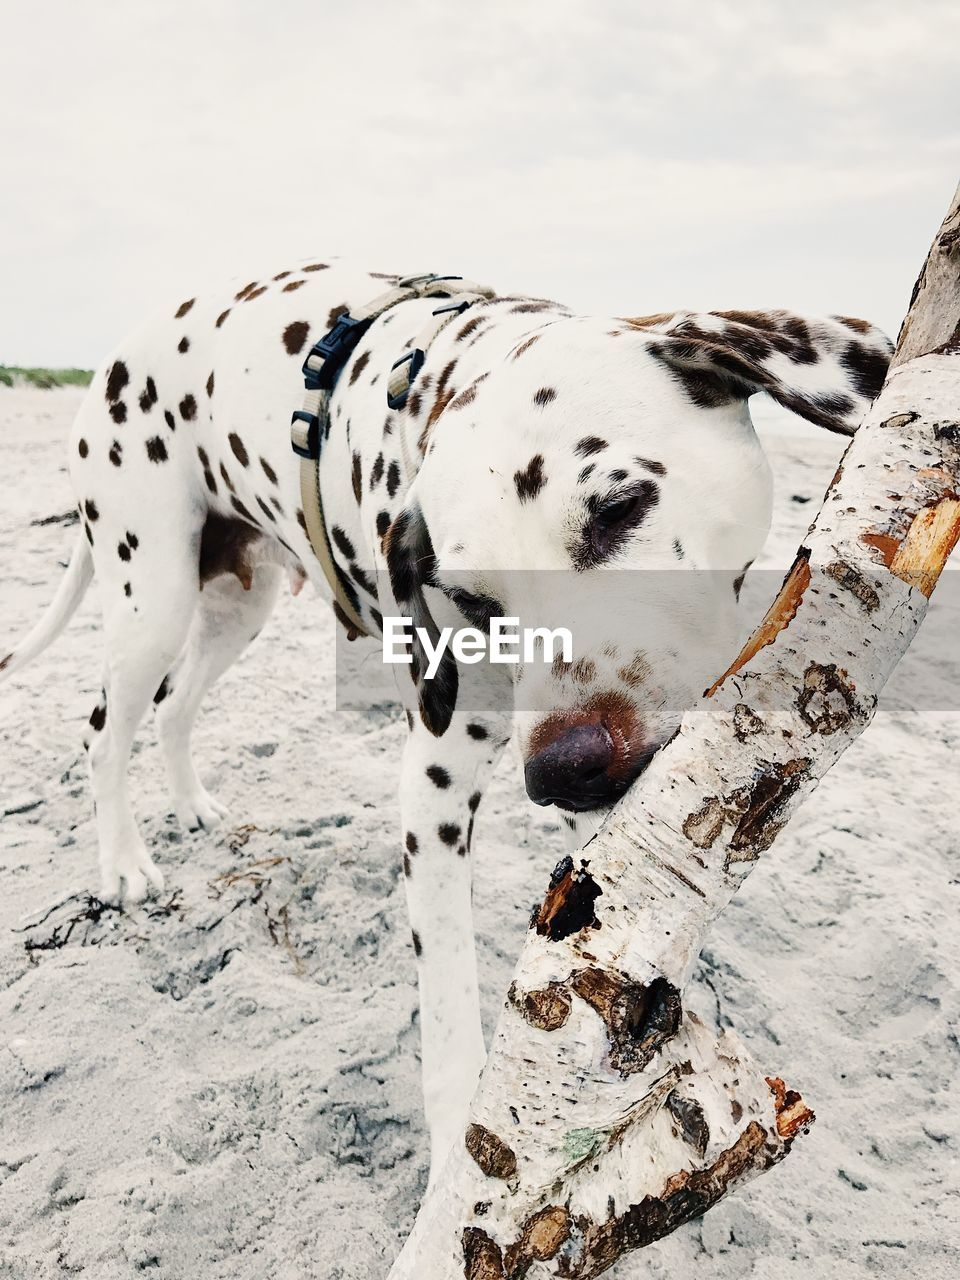 dalmatian dog, white color, dog, one animal, mammal, canine, vertebrate, animal, domestic, animal themes, domestic animals, pets, spotted, day, no people, land, field, nature, focus on foreground, outdoors, purebred dog